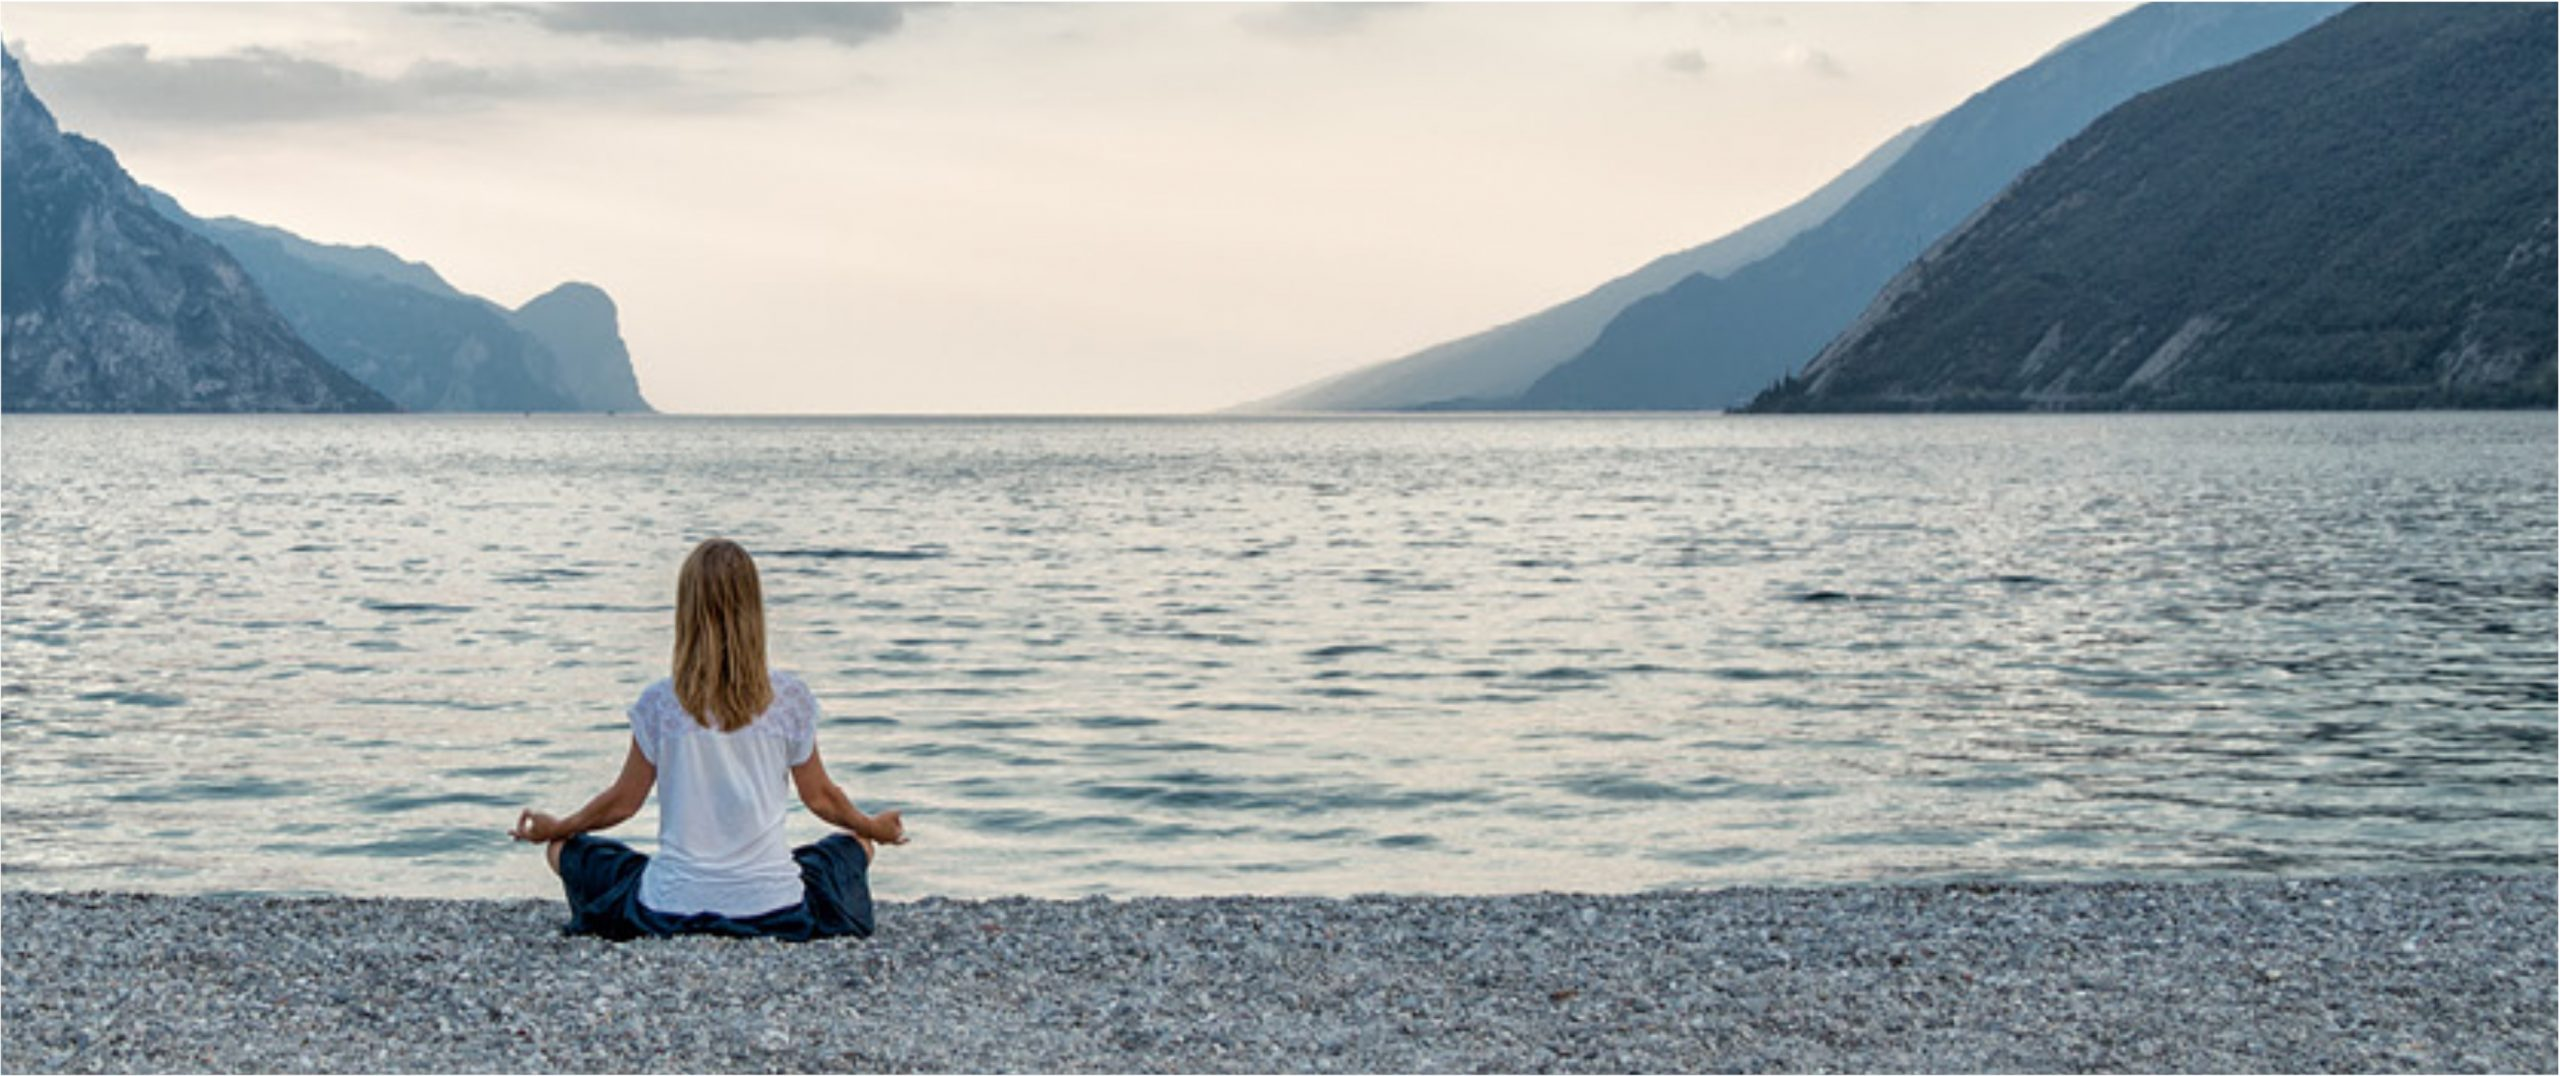 blonde haired woman, in a white shirt meditating on the edge of the water